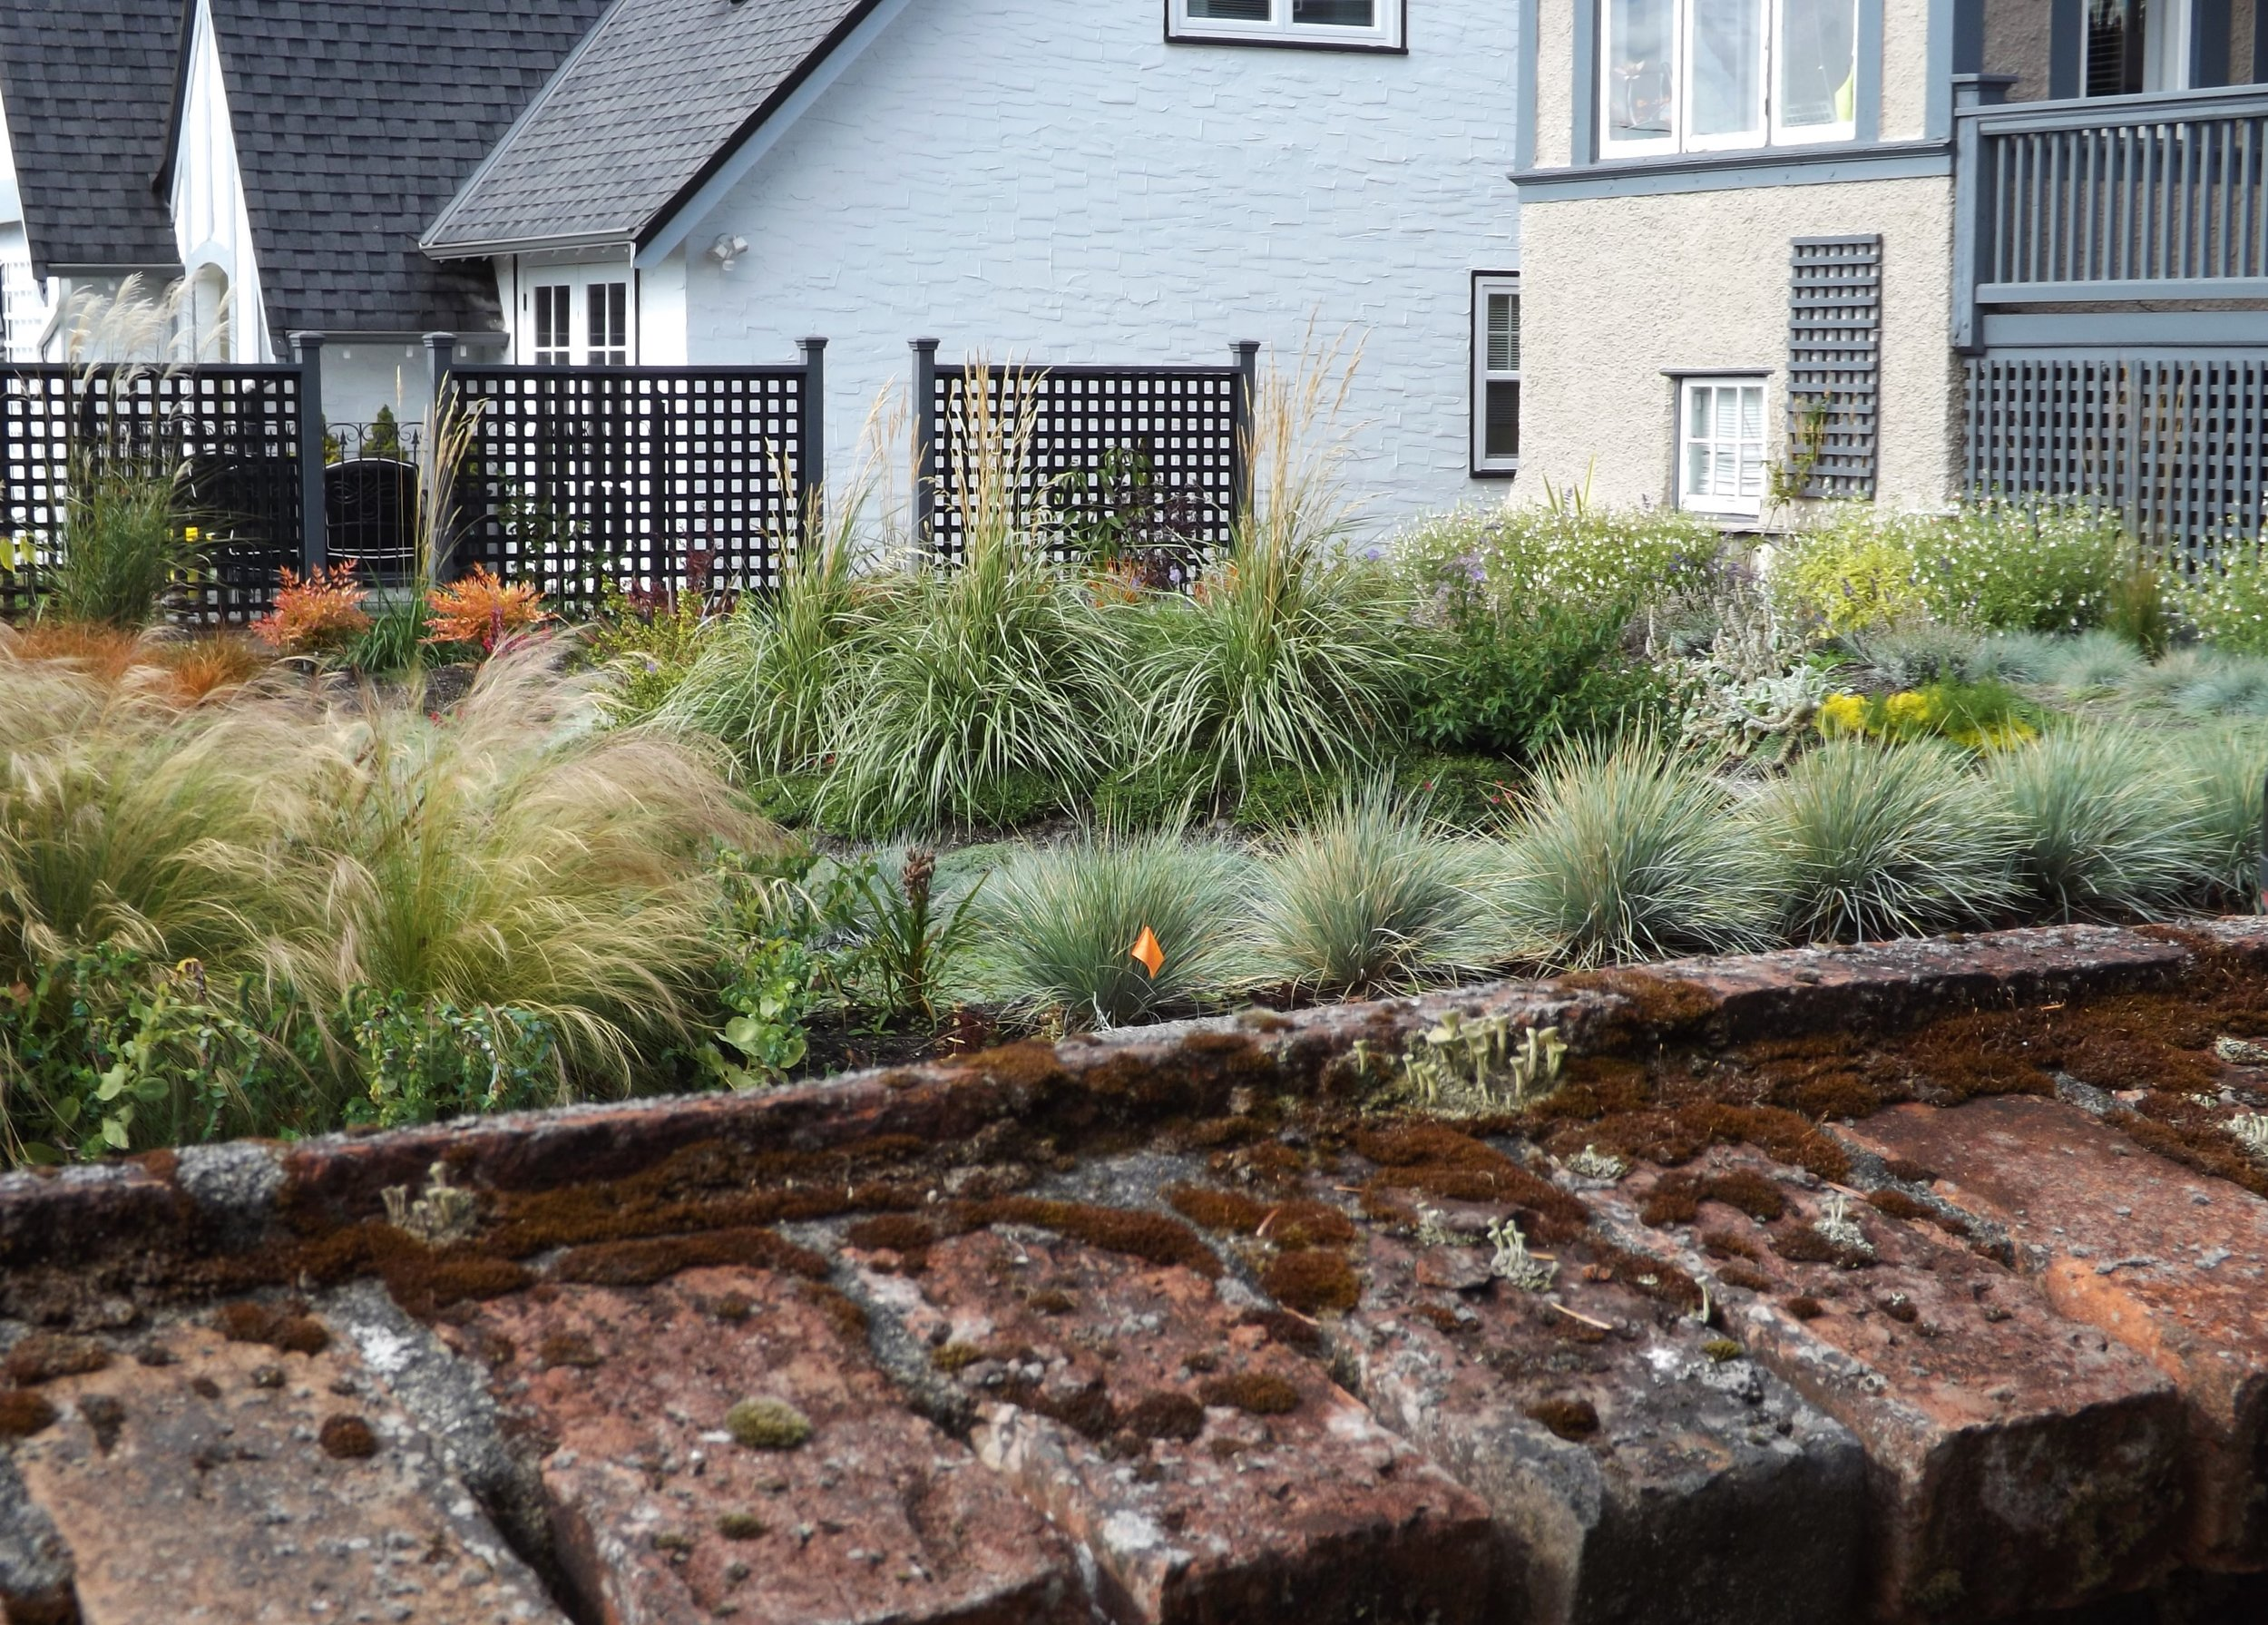 Varying the heights and textures of grasses will give you dramatic effects that make lawns seem ho-hum by comparison.